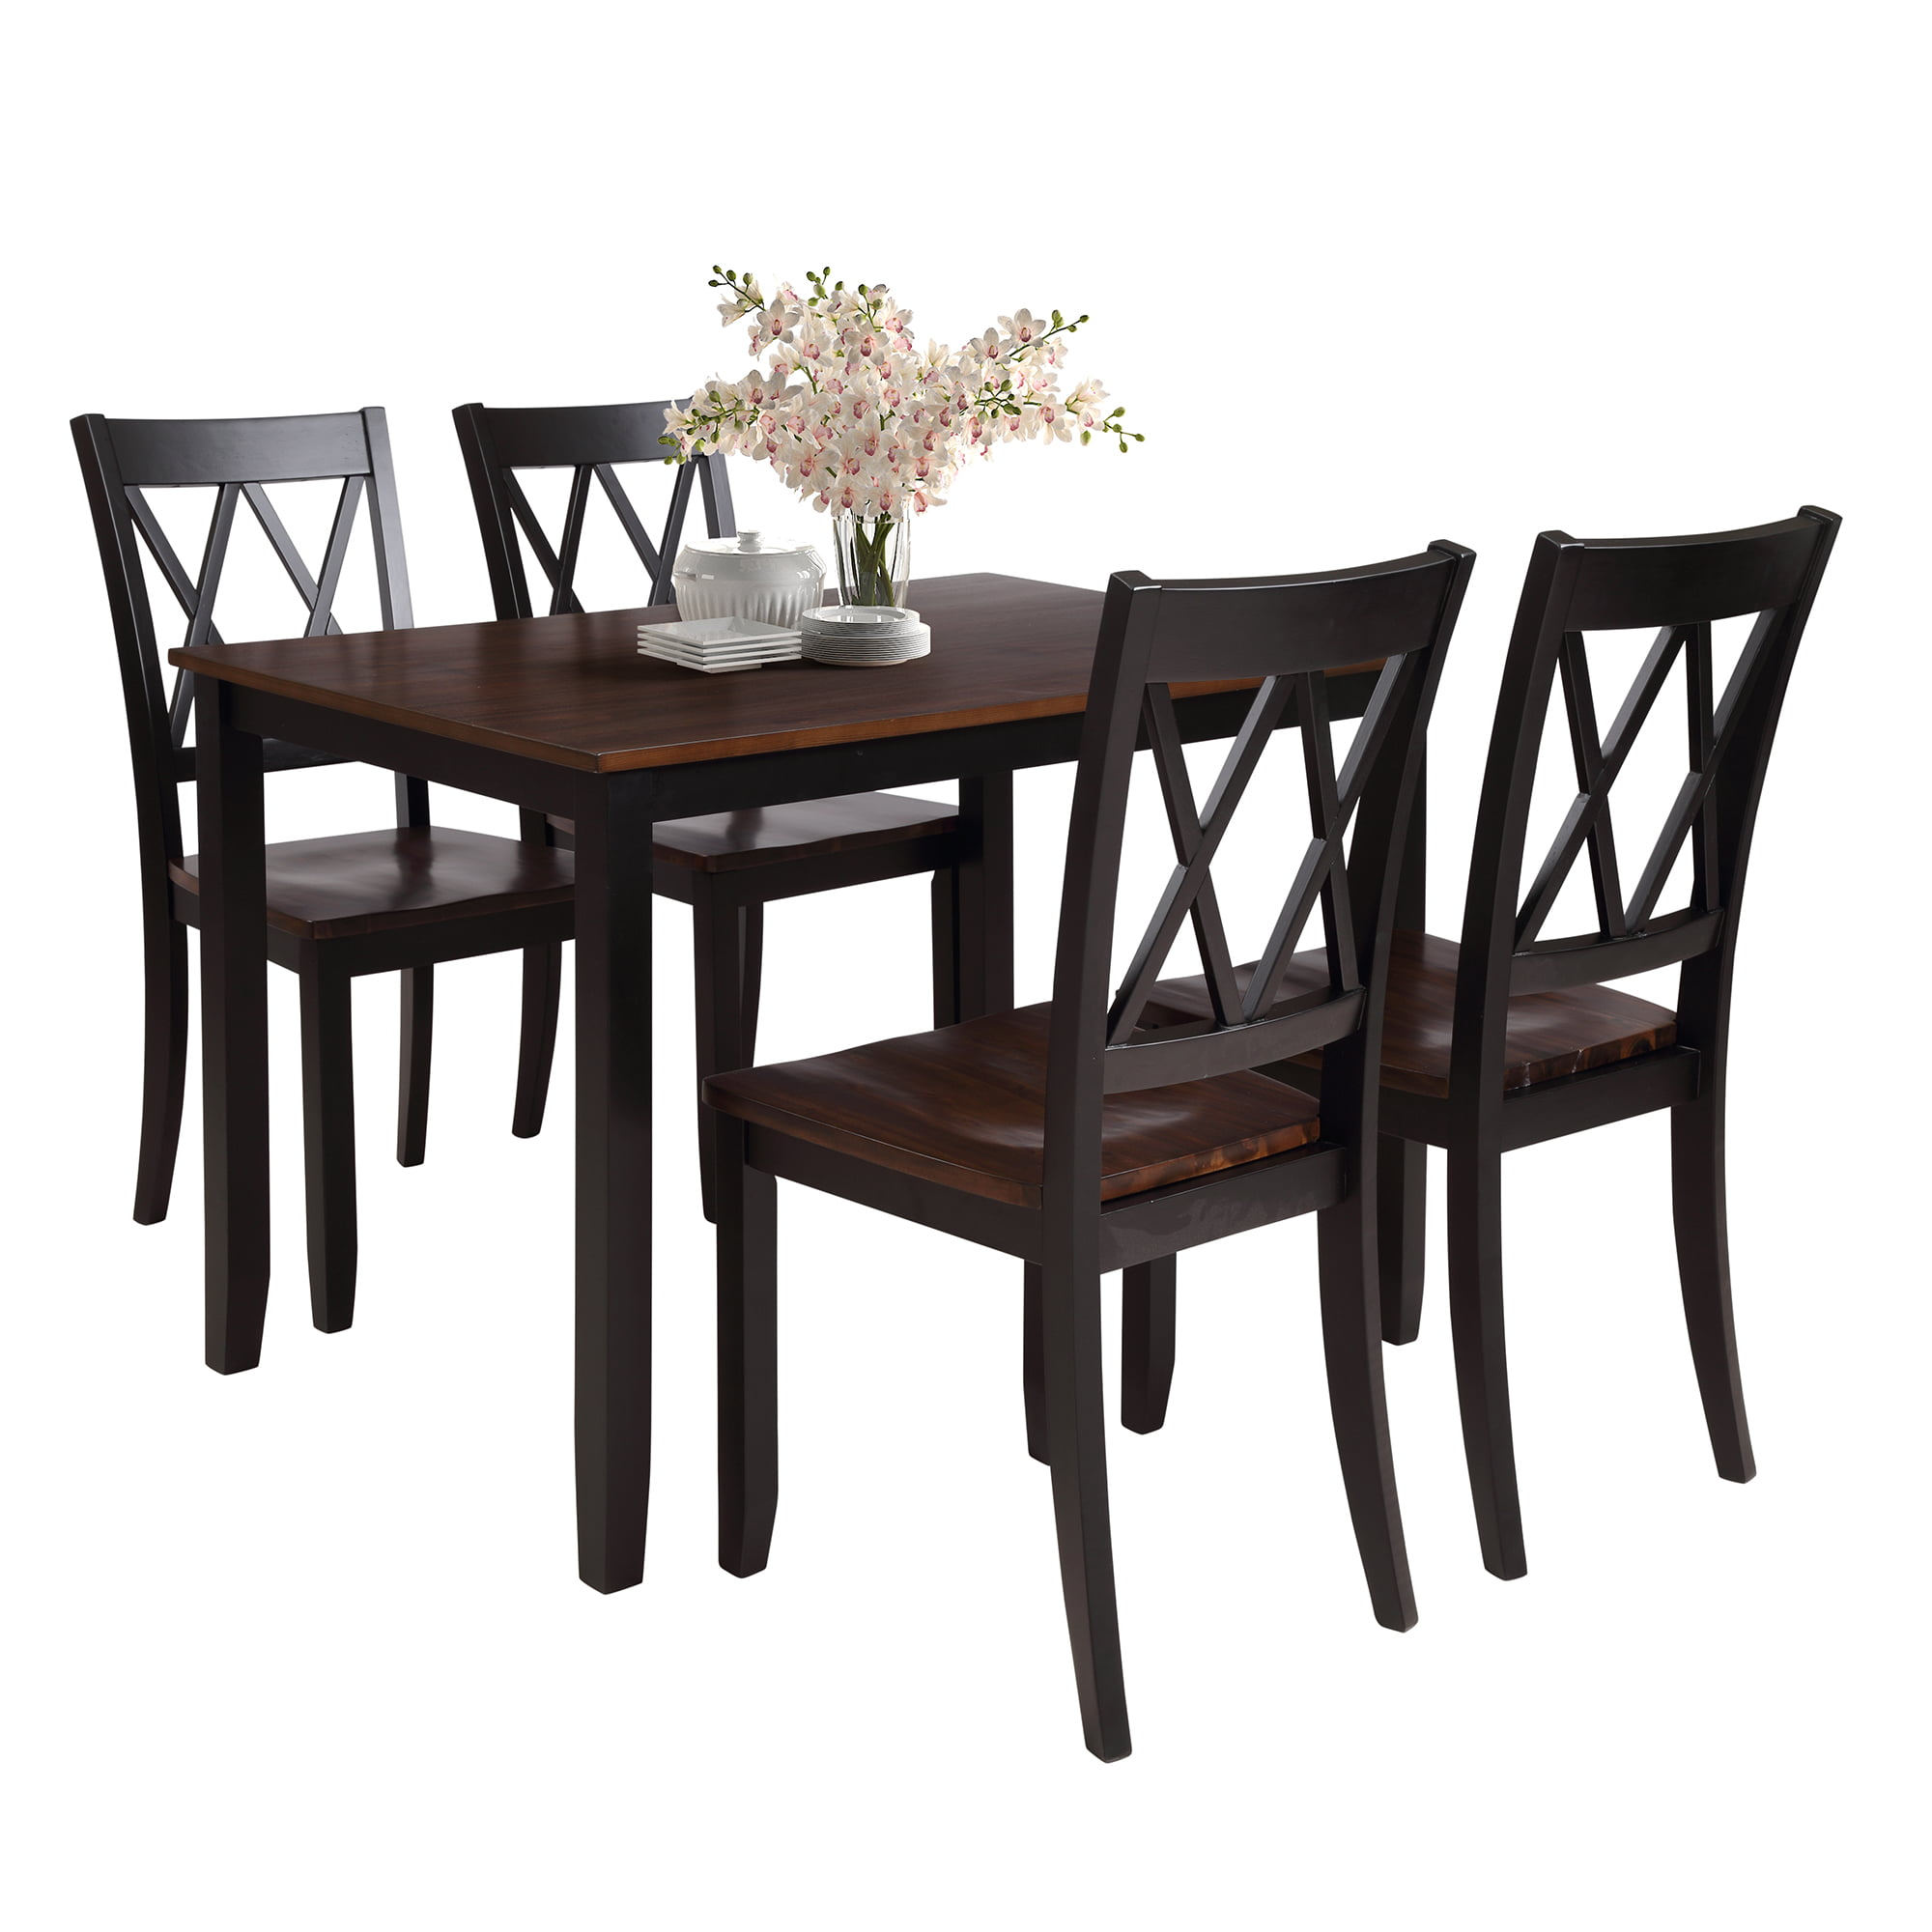 clearance dining room sets clearance dining table set with 4 chairs 5 piece wooden kitchen table set rectangular dining 842